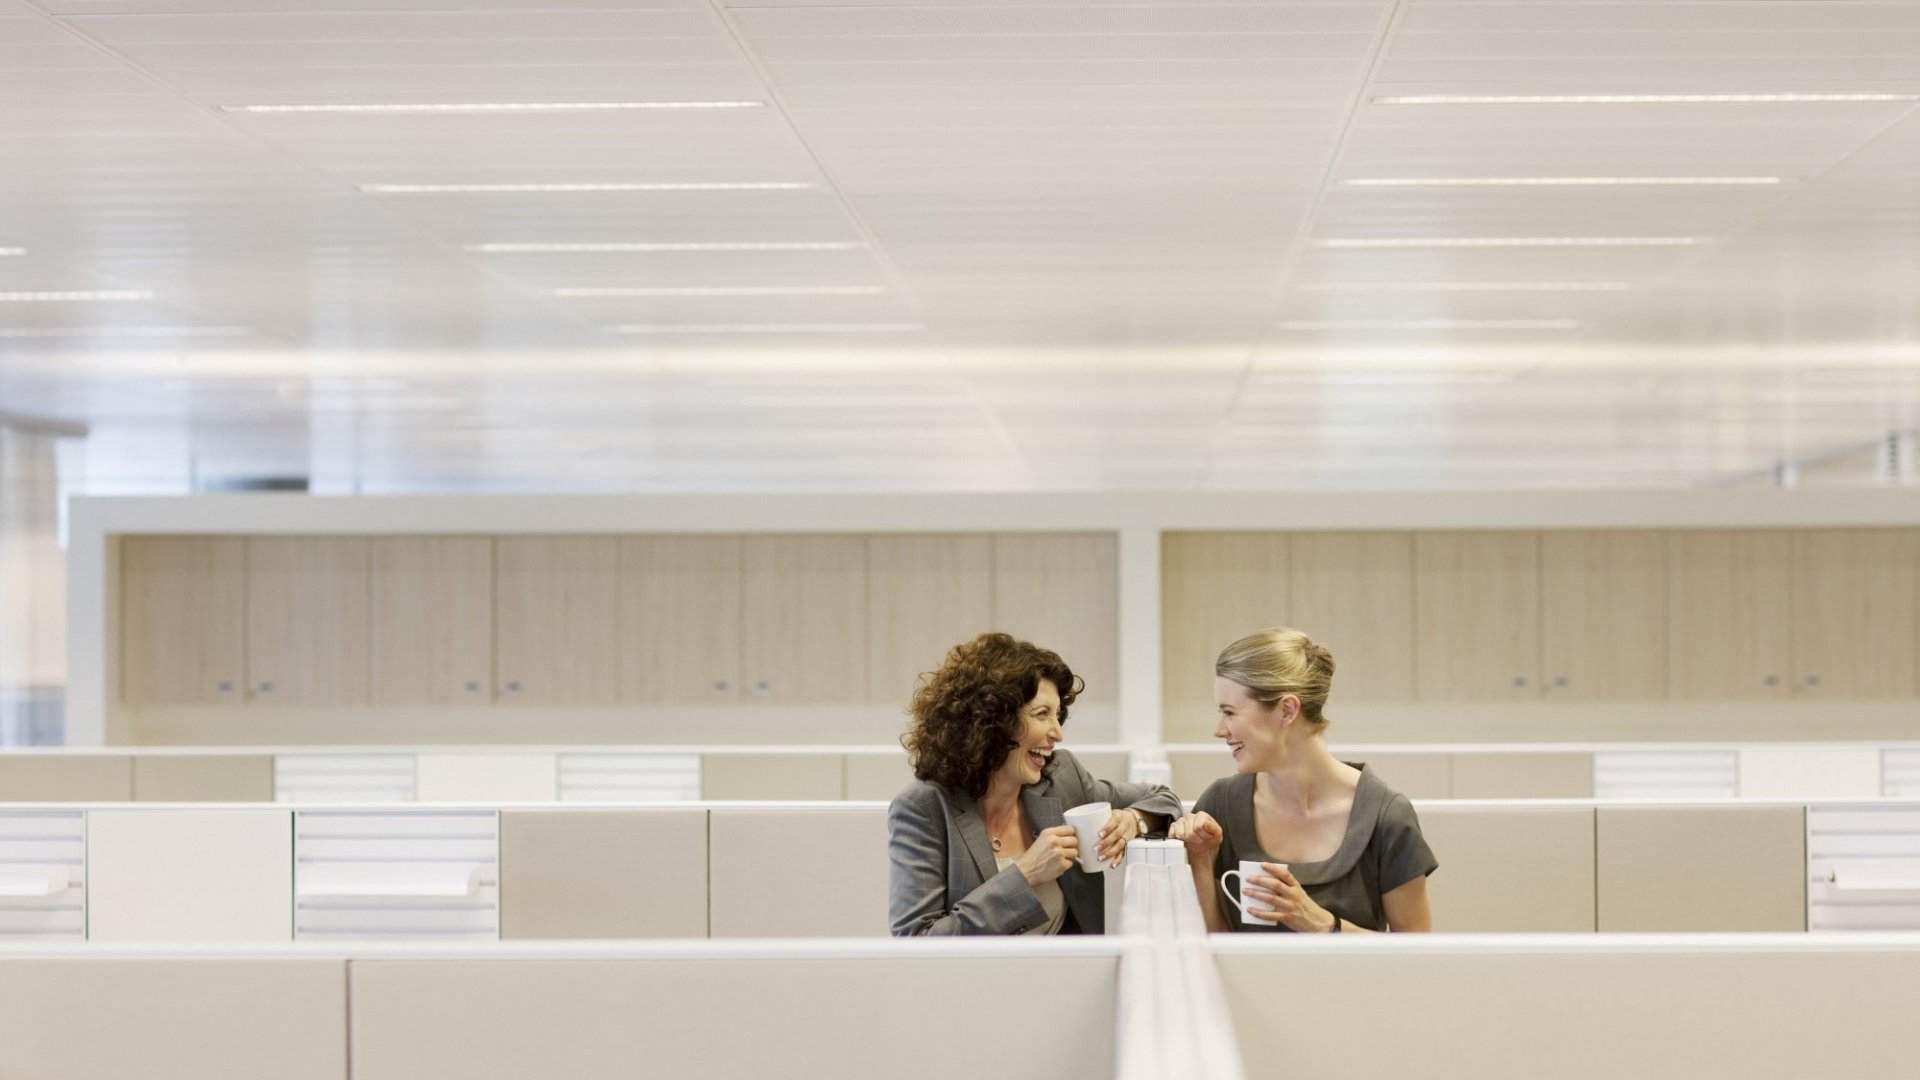 4 'Workplace Languages' That Can Improve Your Relationships in the Office